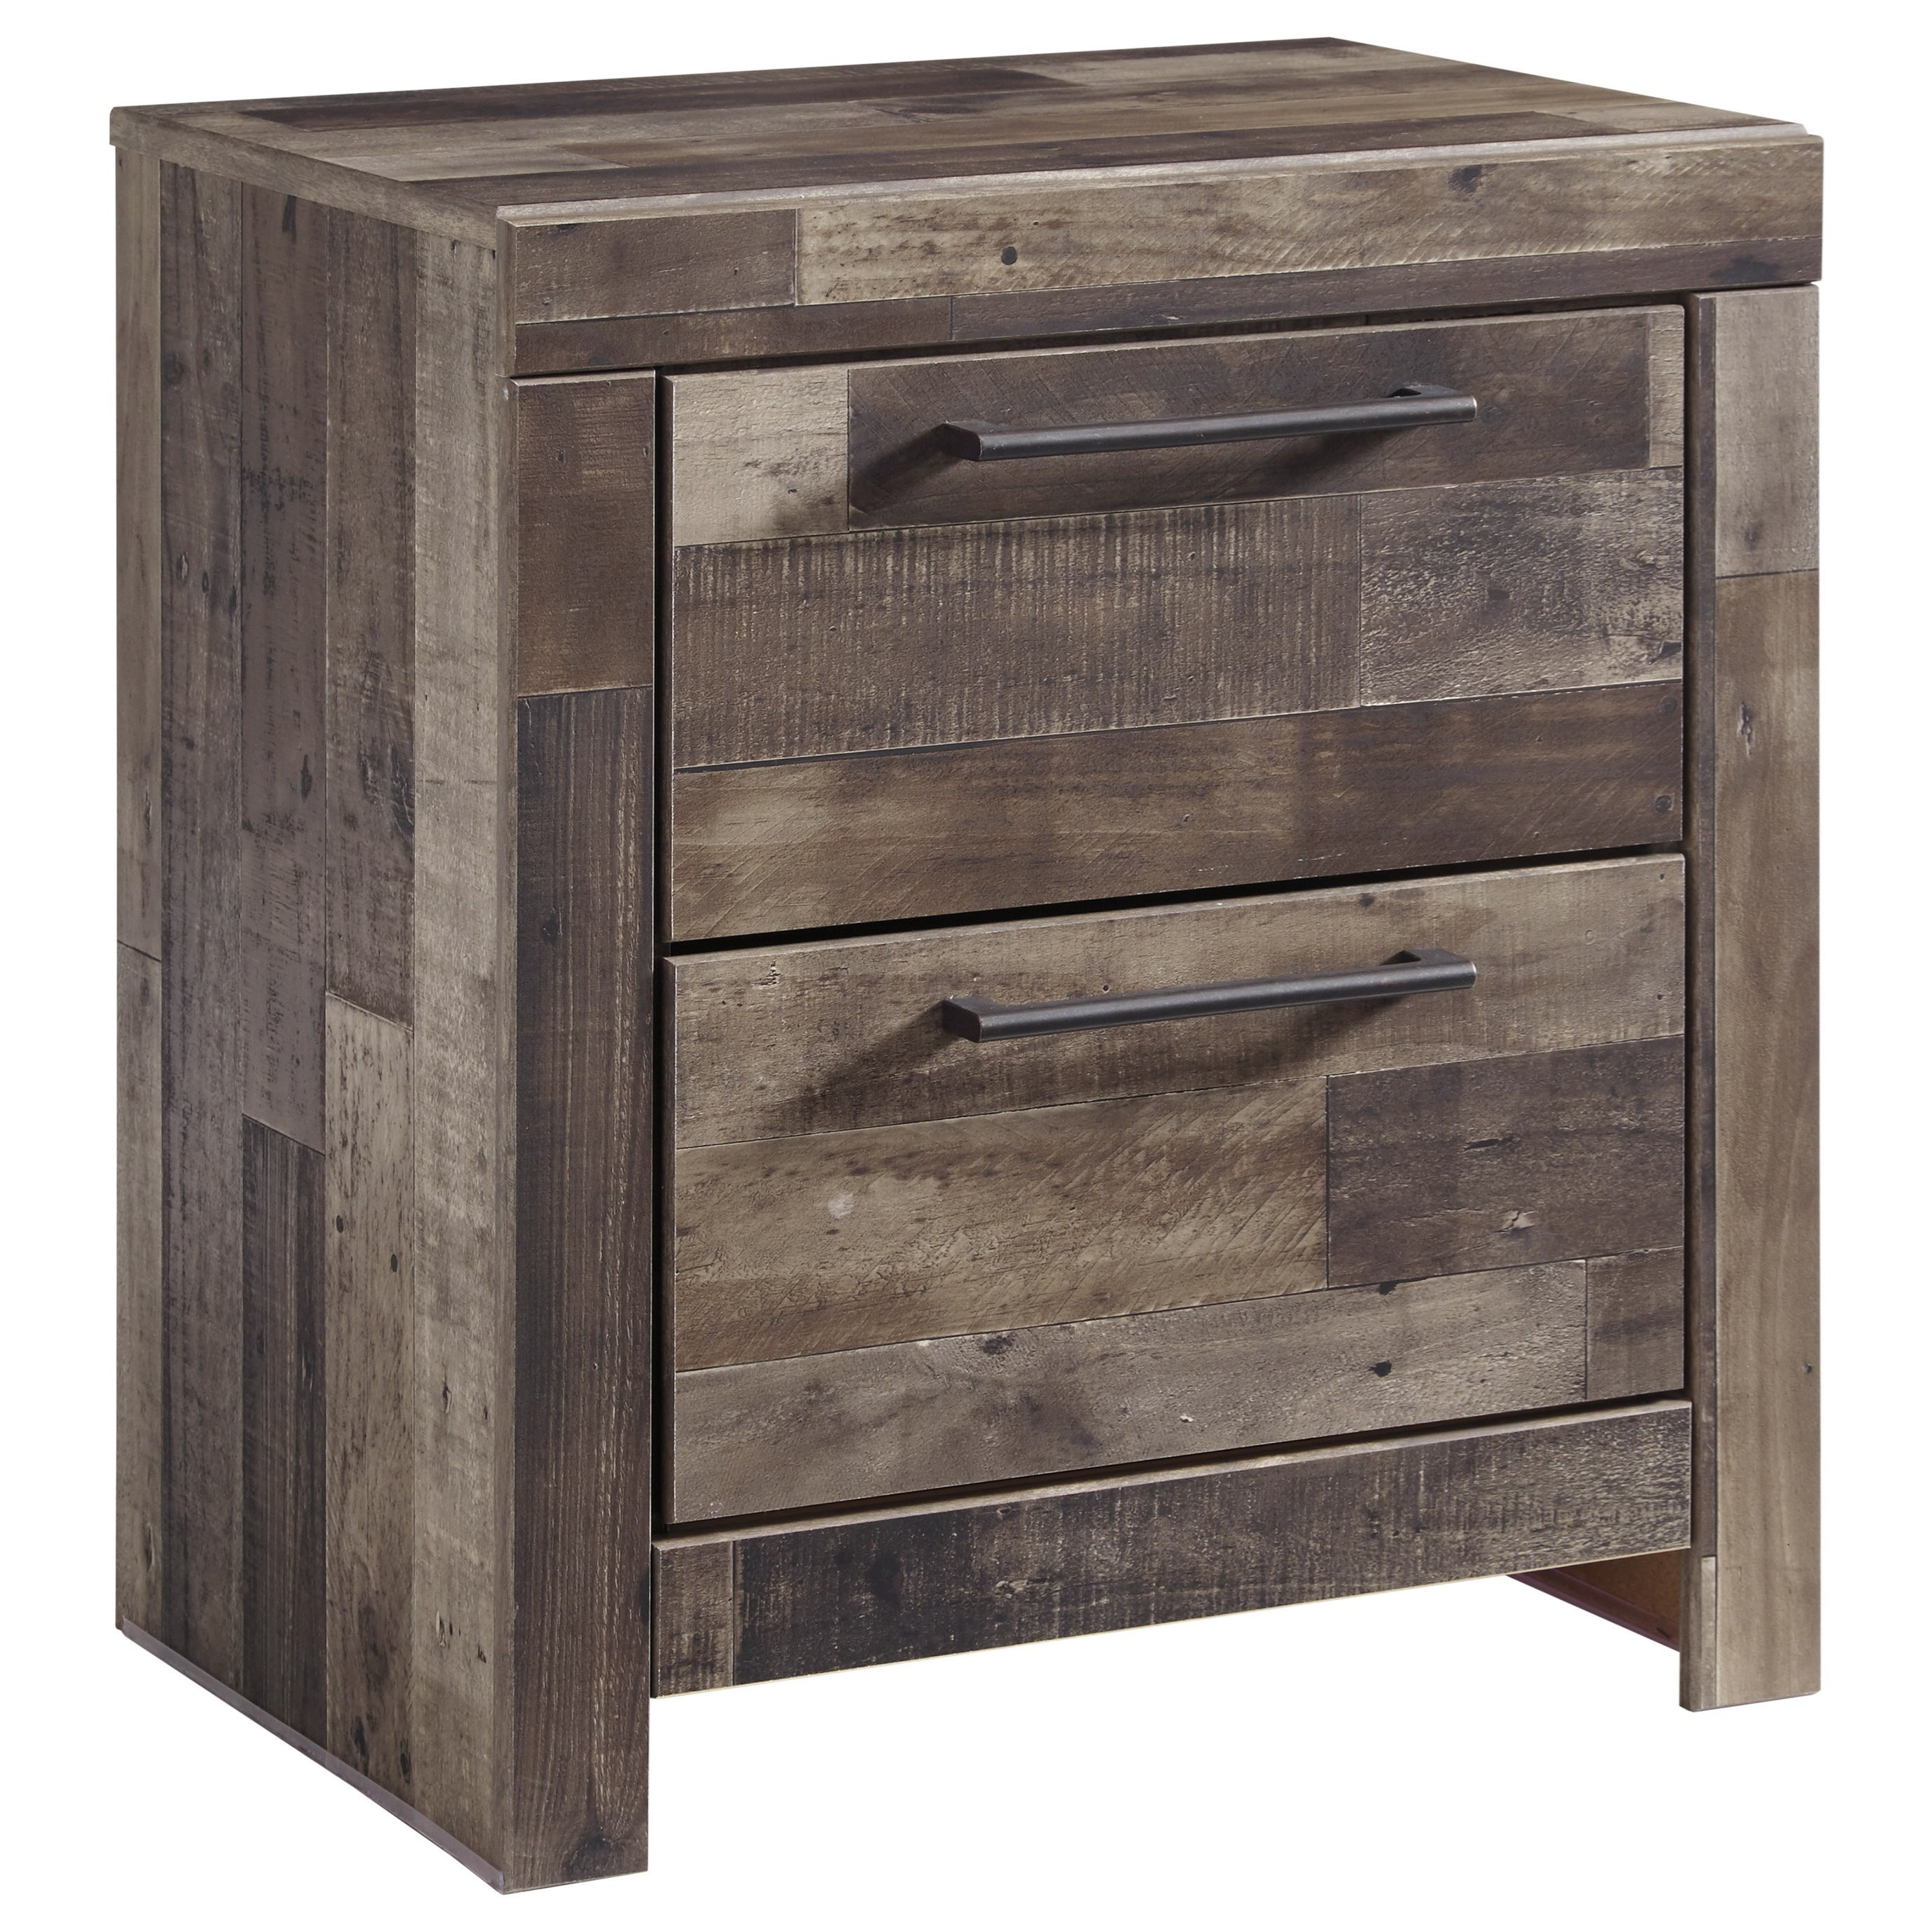 RIGEL 2-Drawer Nightstand by JB King at EFO Furniture Outlet